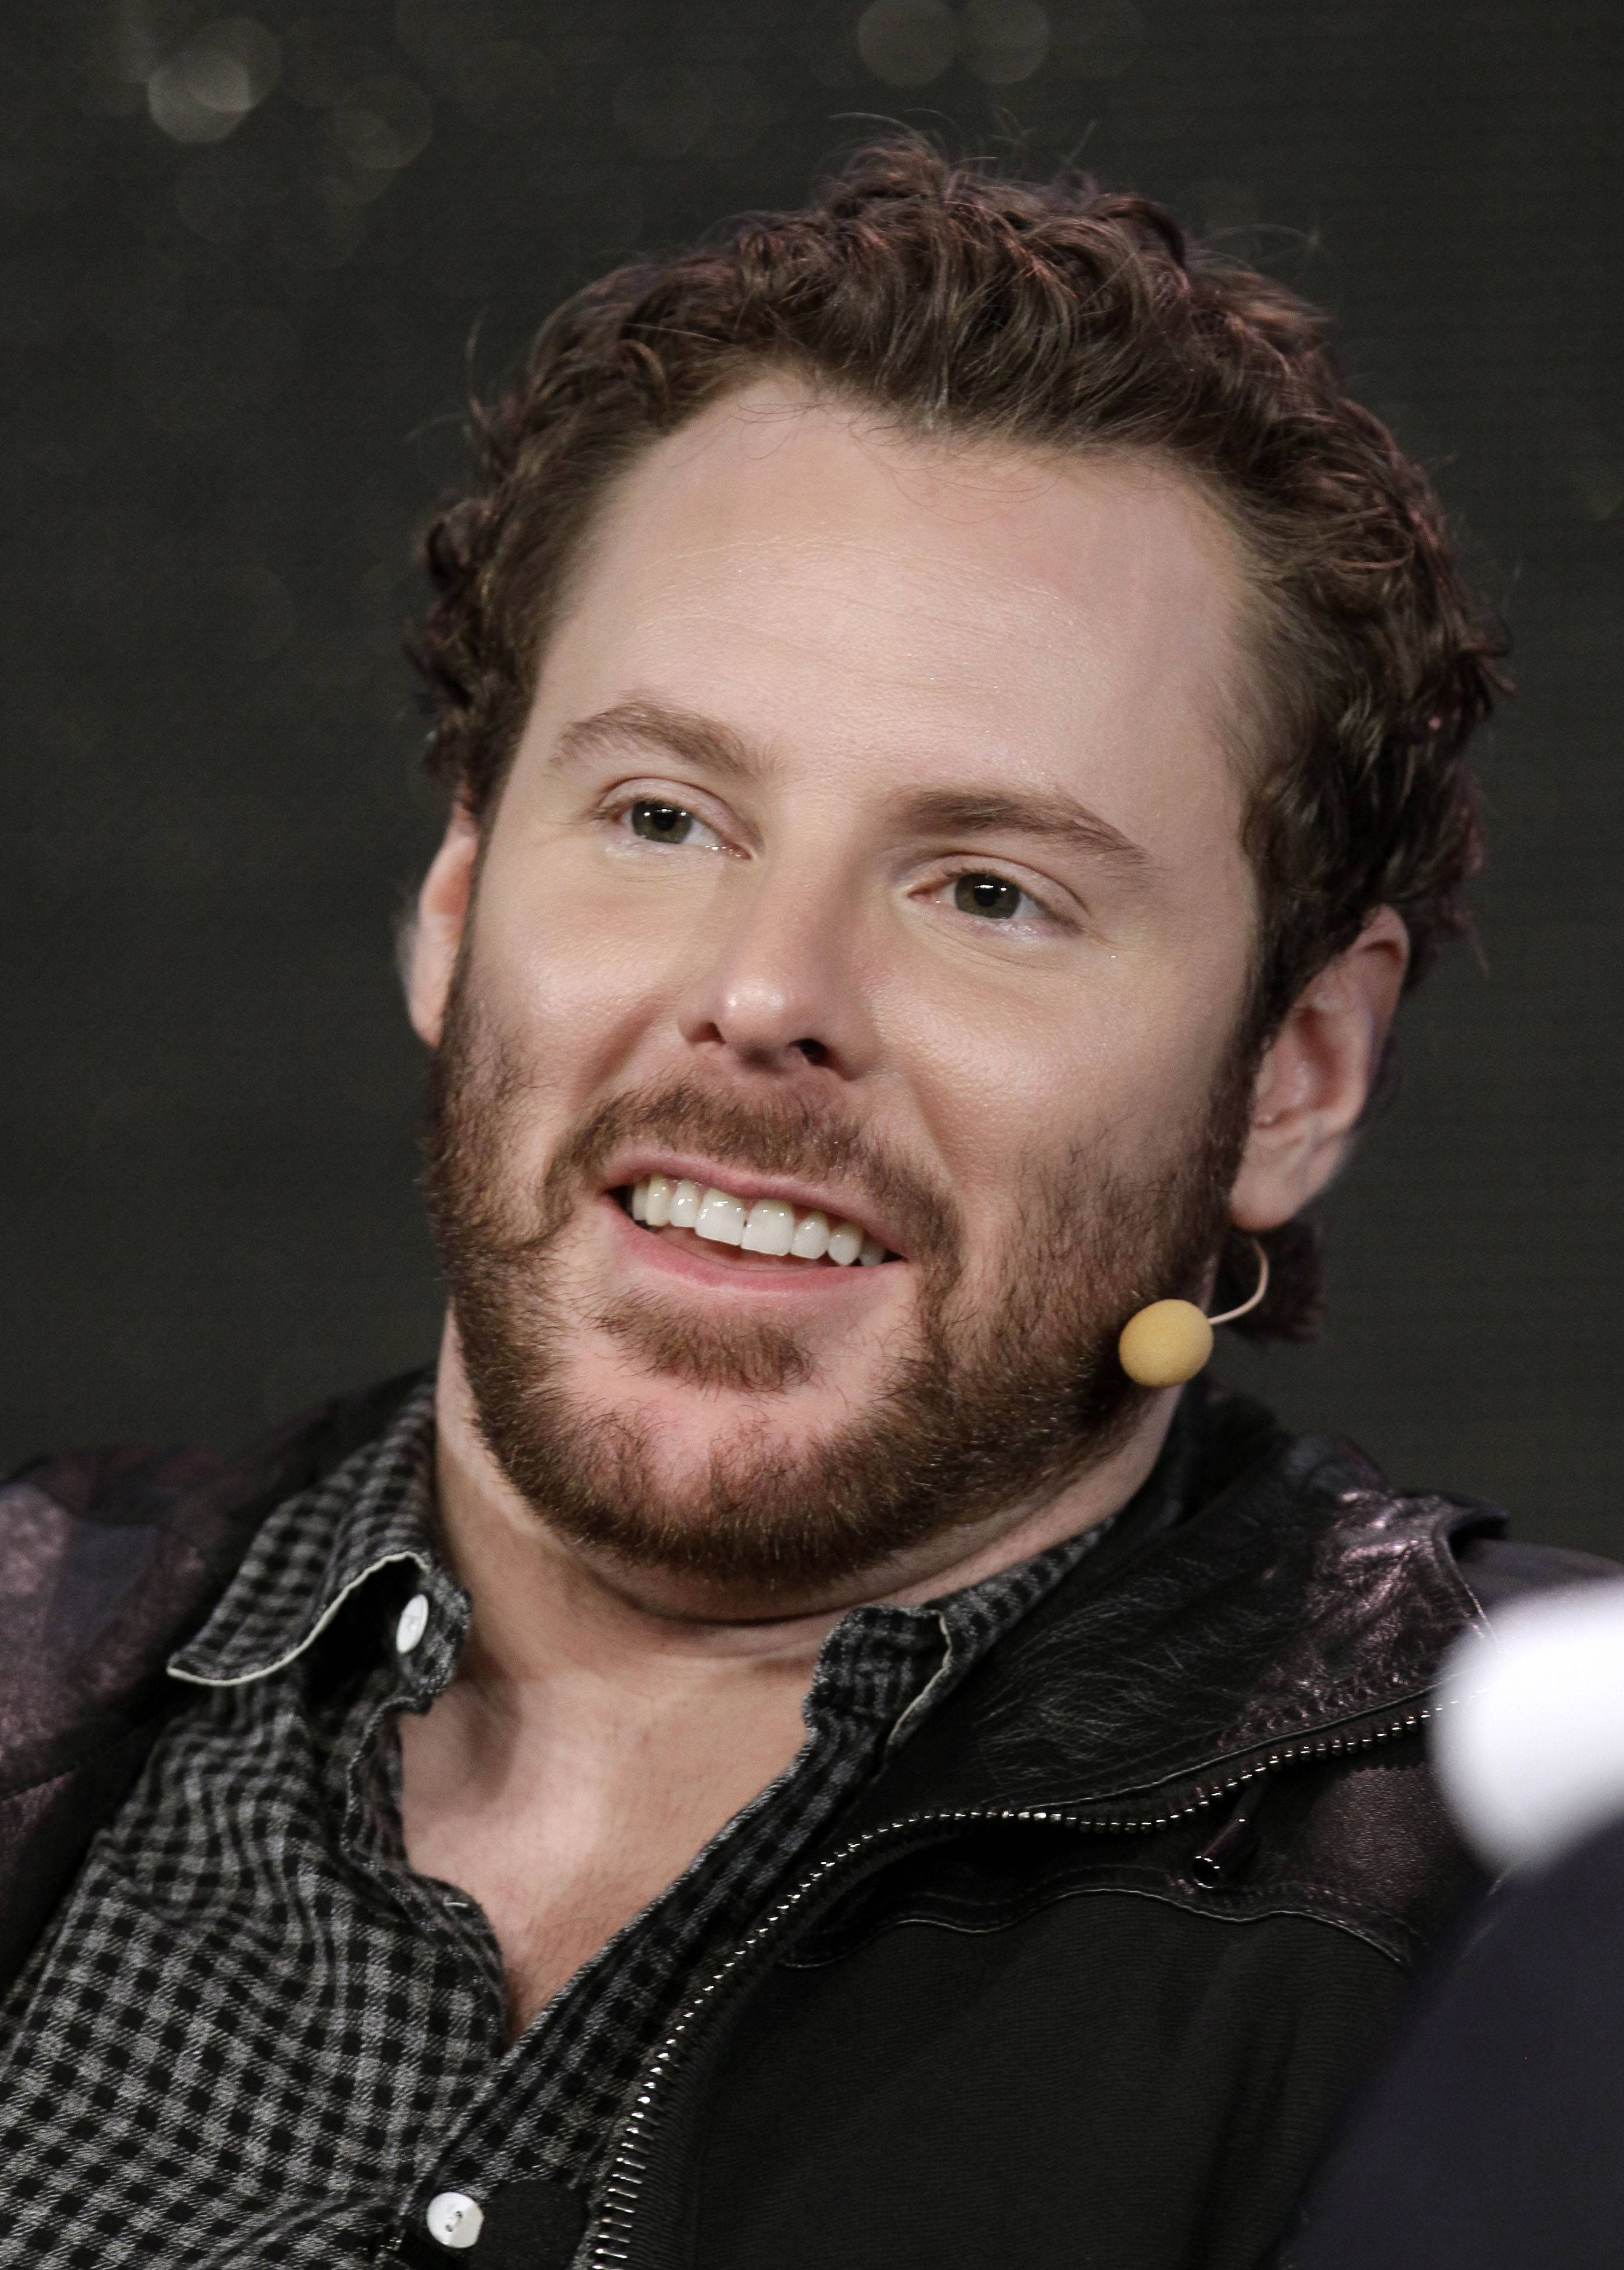 Sean Parker, co-founder of Napster, speaks at Web. 2.0 Conference in San Francisco. The Silicon Valley entrepreneur and philanthropist has announced one of the largest private donations to allergy research through the establishment of the Sean N. Parker Center for Allergy Research at Stanford University.